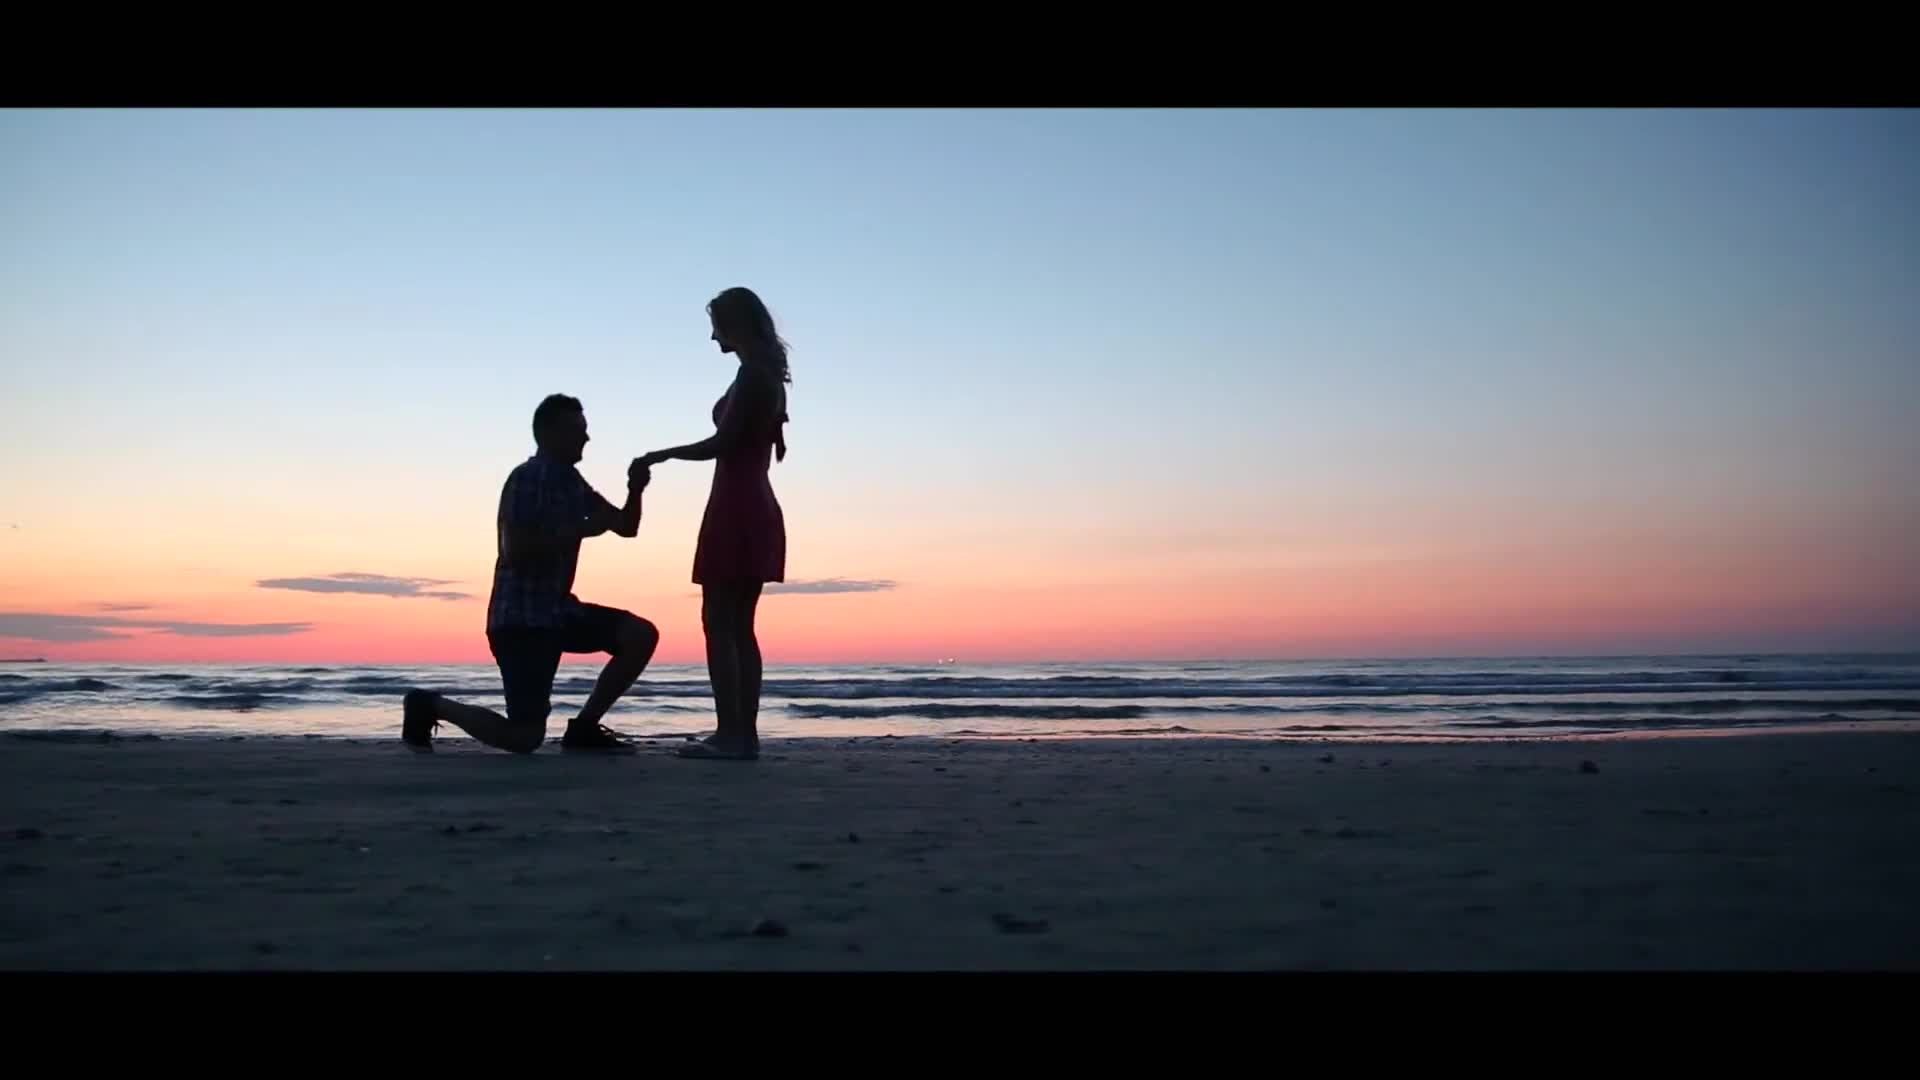 Man proposing by the beach